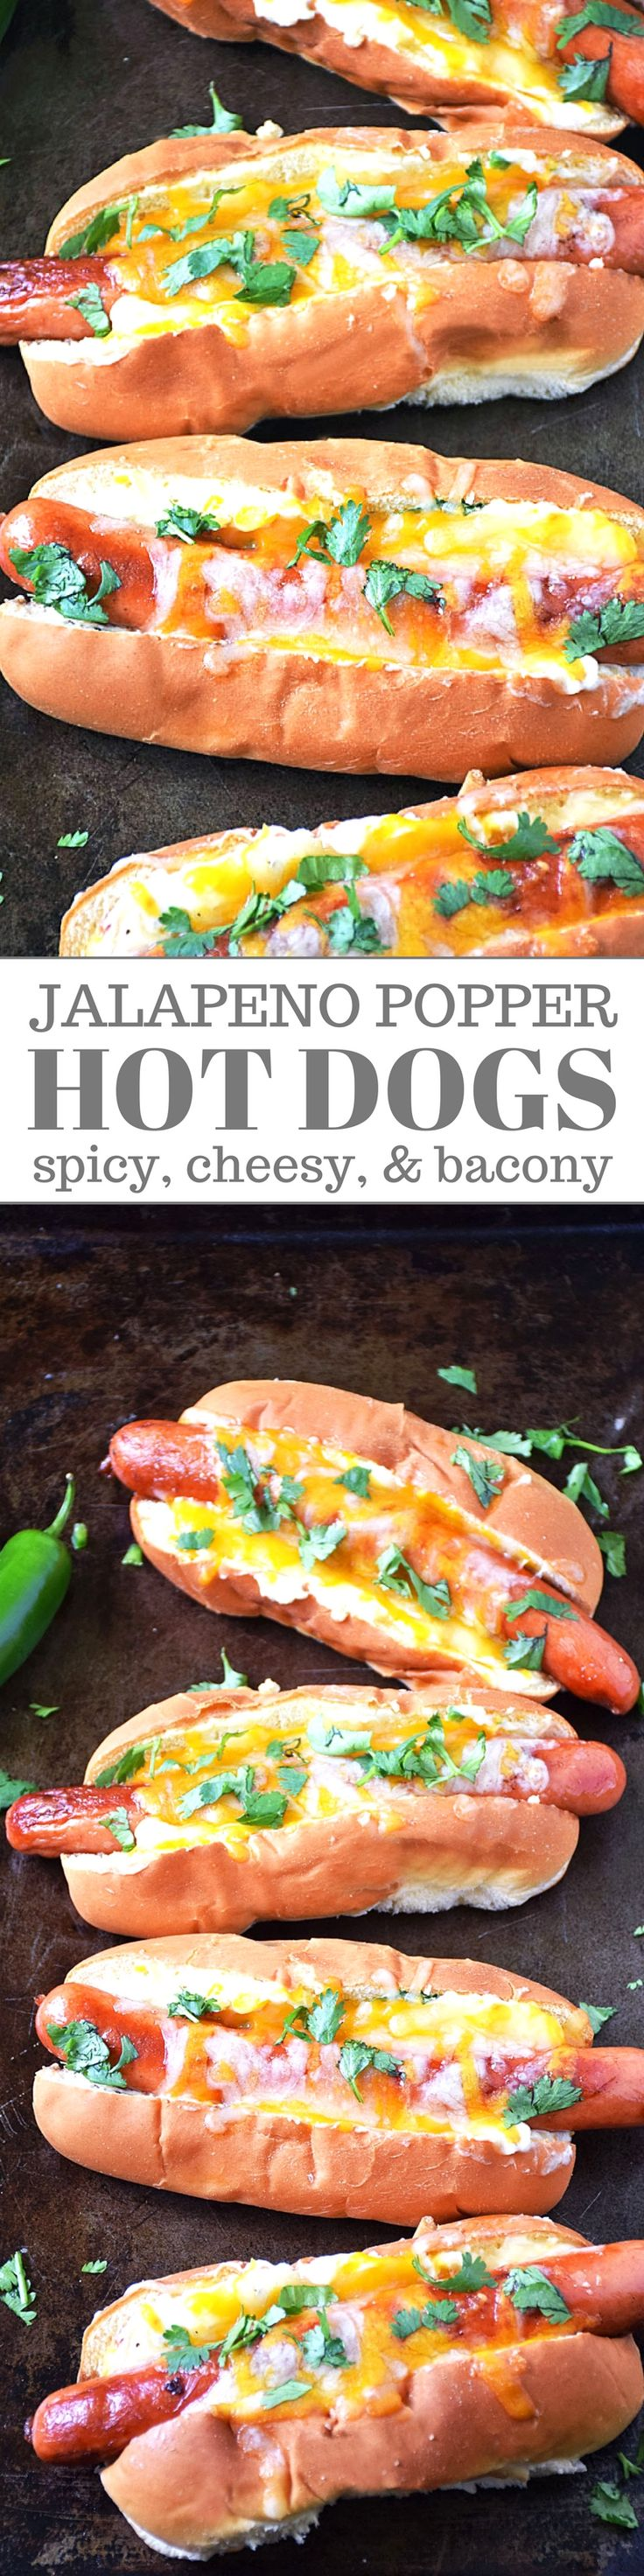 Jalapeno Popper Hot Dogs are a fresh twist on a classic American favorite. This unique recipe happened because I crave the spicy, cheesy, bacon-y goodness traditionally found in the popular Jalapeno Popper appetizer all the time! Why not put all that deliciousness on a hot dog?